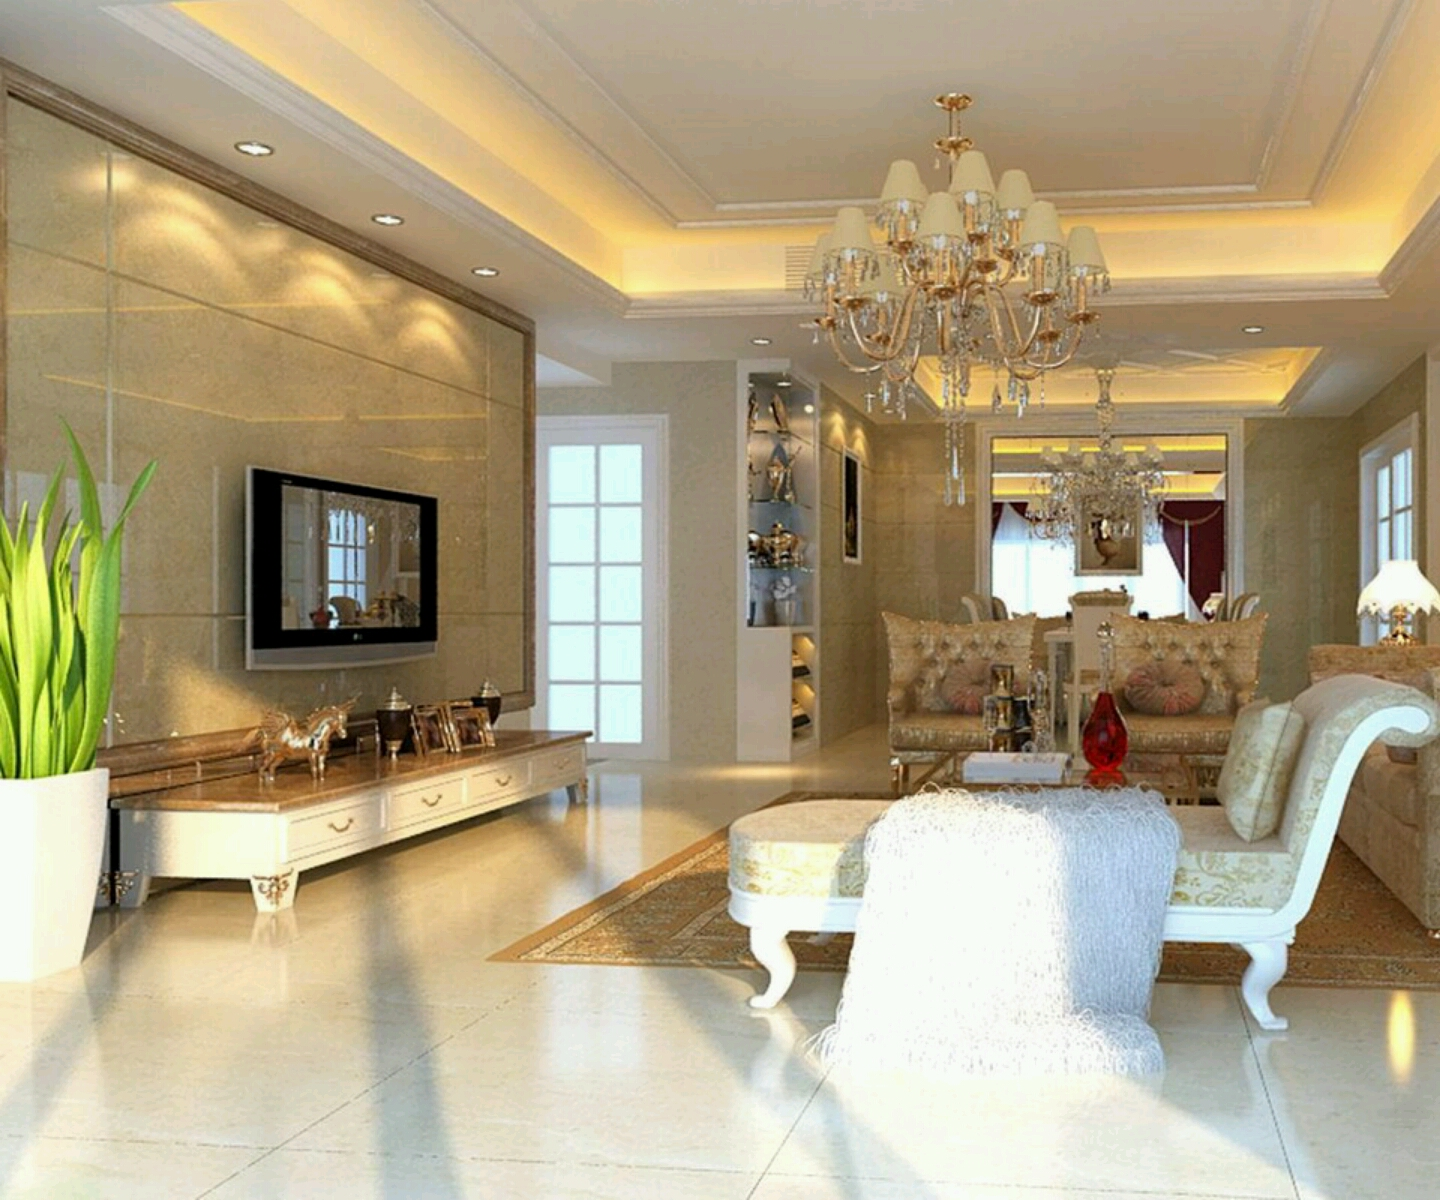 New home designs latest luxury homes interior decoration for Interior home decoration